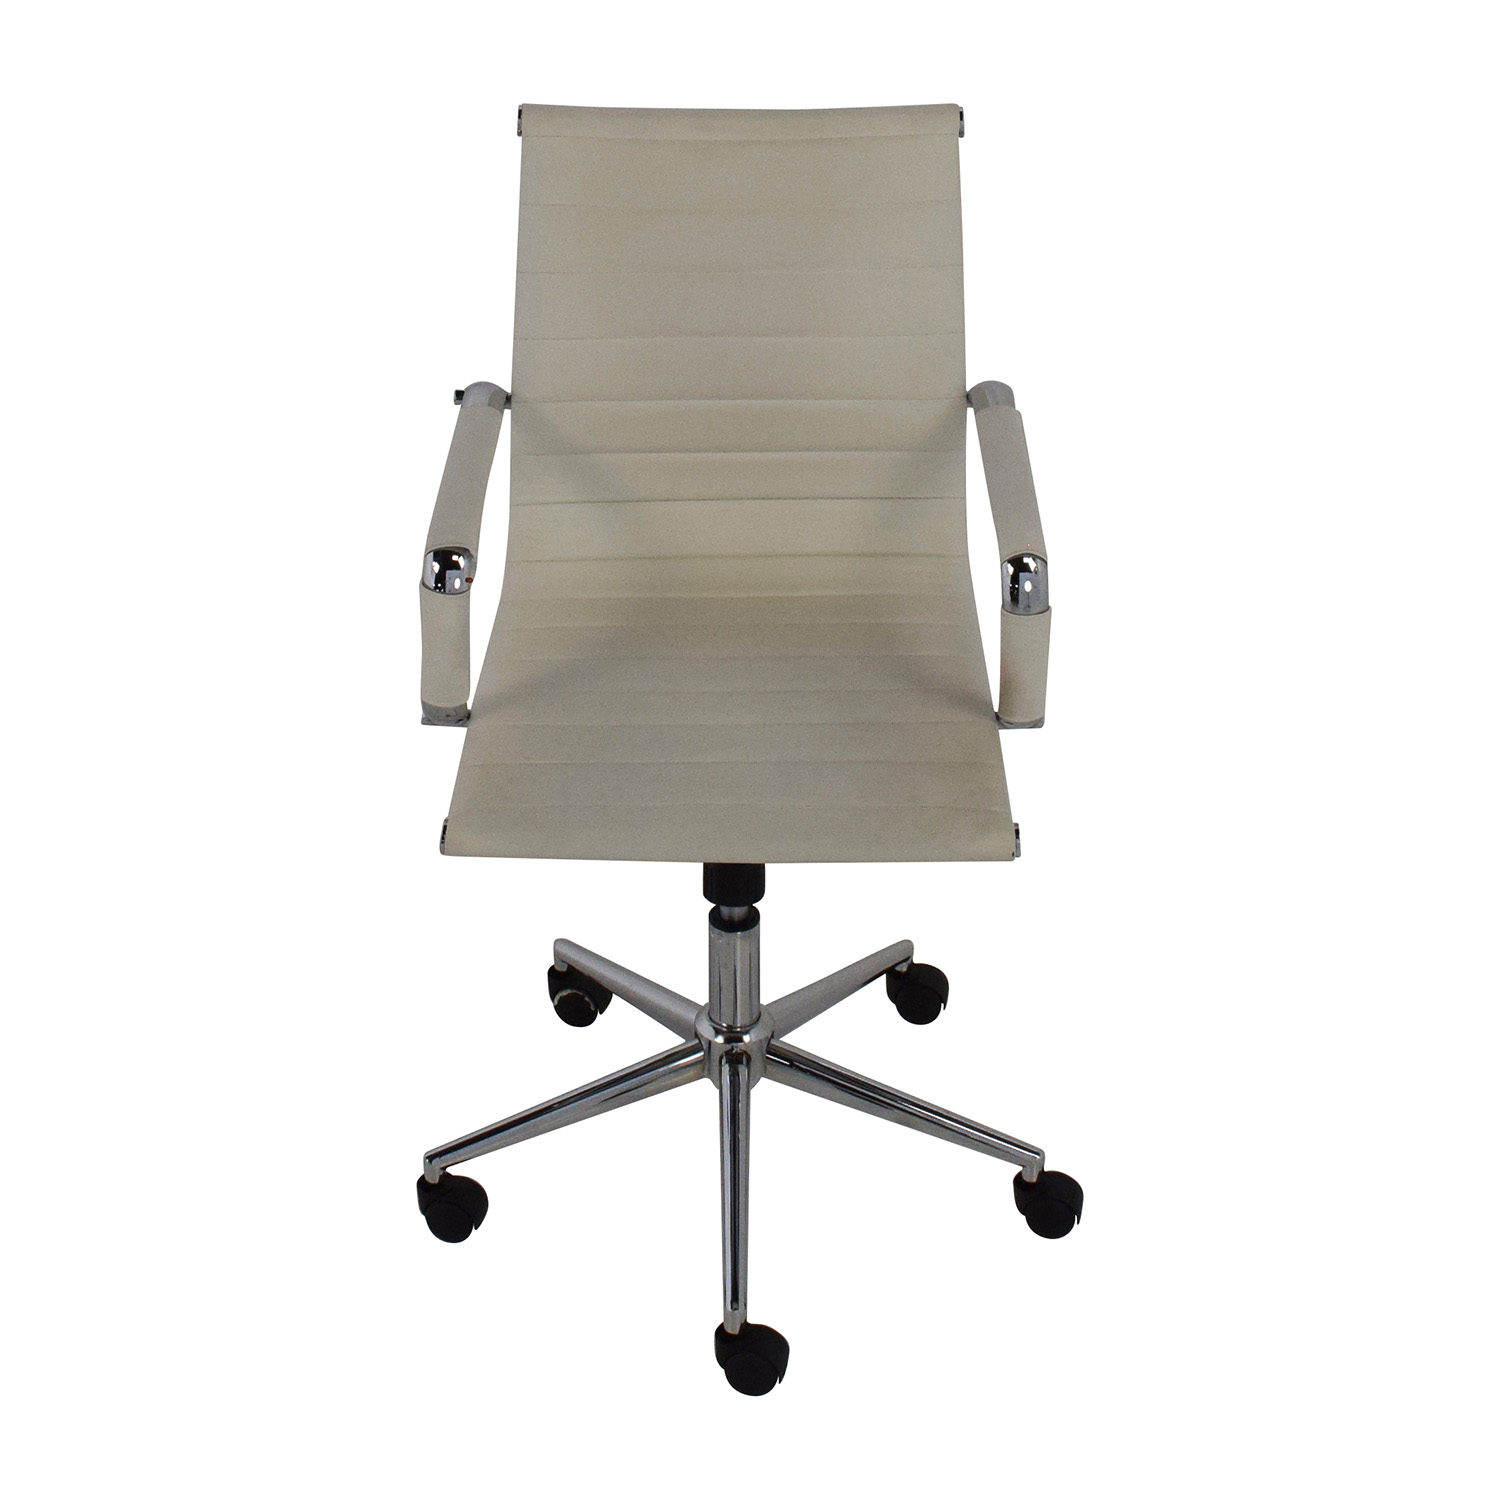 2xhome 2Xhome Modern Mid Back White Faux Leather Office Chair dimensions